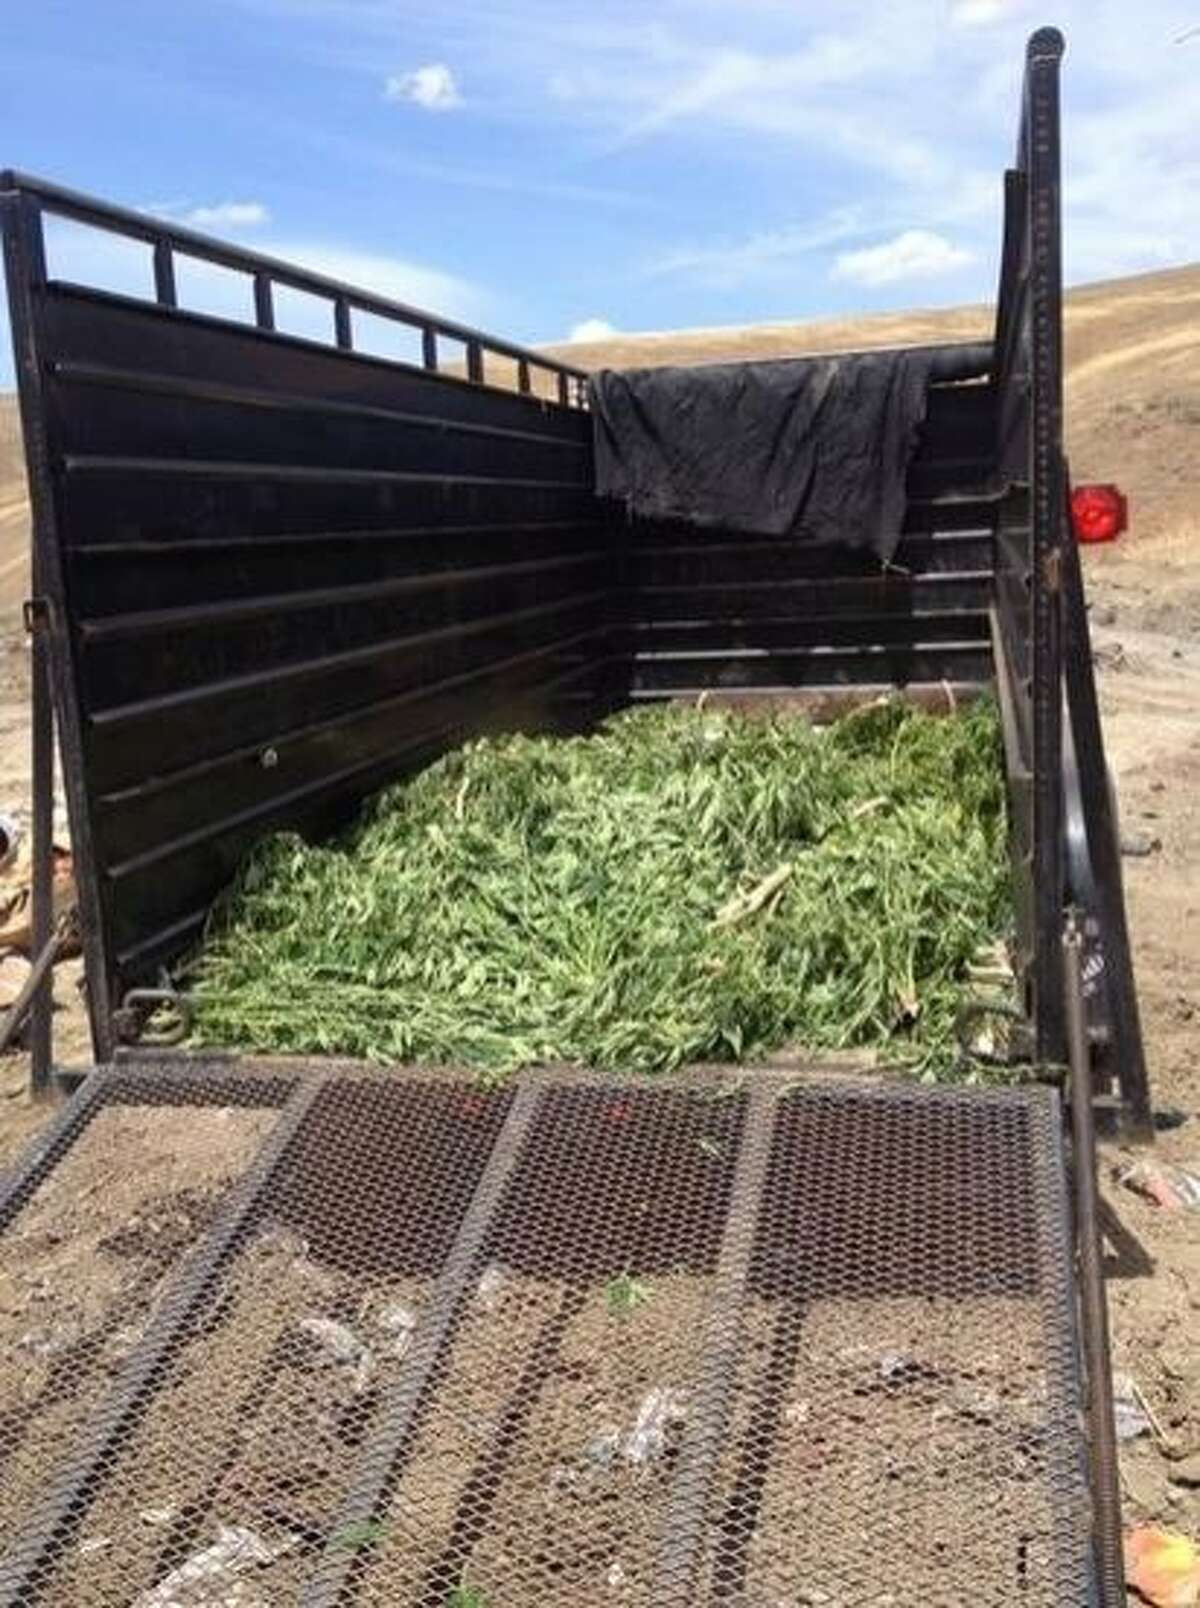 Deputies from the sheriff's office clear a marijuana garden found growing in unincorporated Santa Clara County on Friday, July 17, 2015.